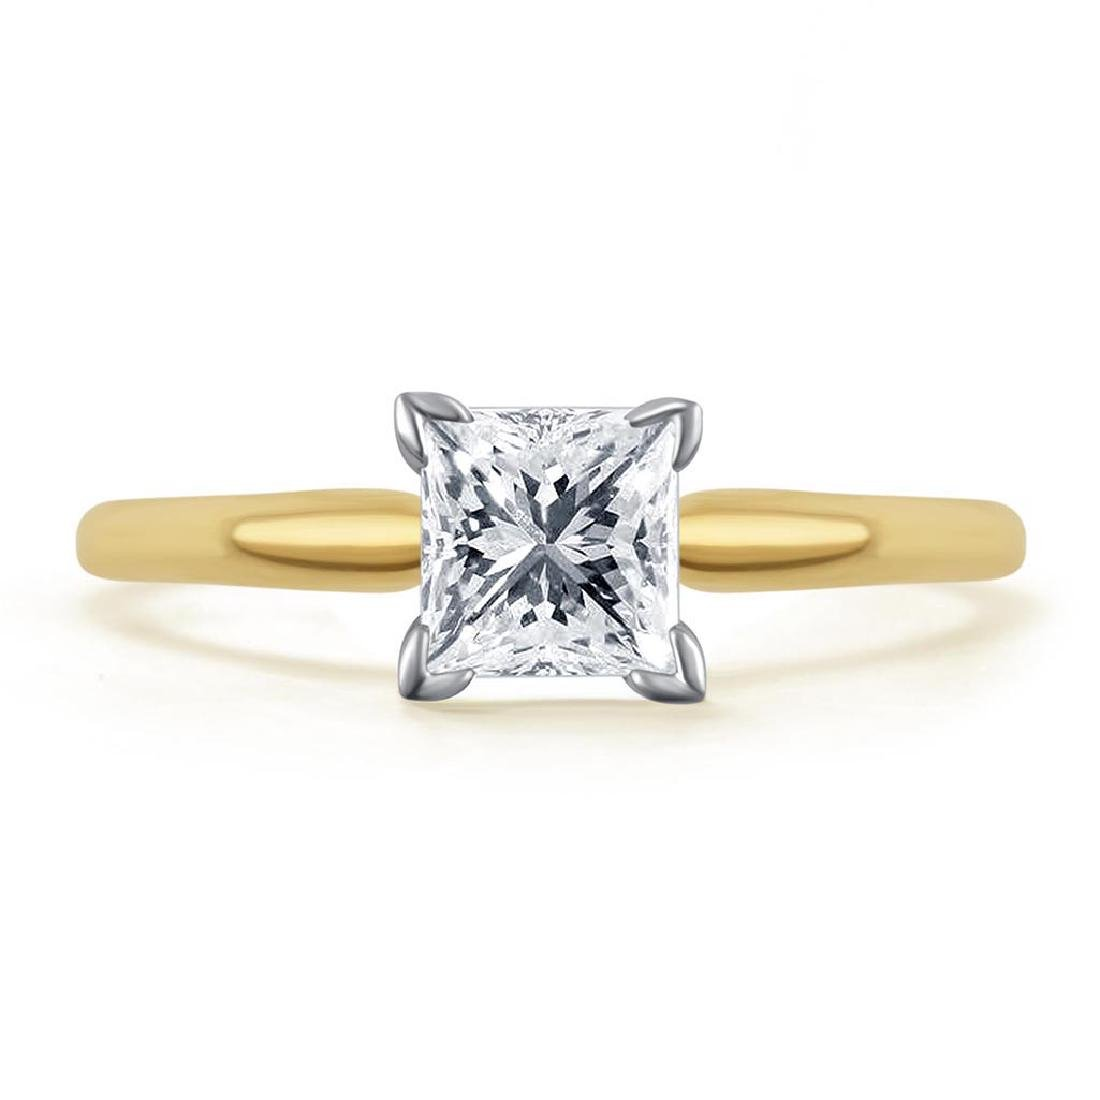 CERTIFIED 1 CTW PRINCESS G/SI1 SOLITAIRE RING IN 14K YE